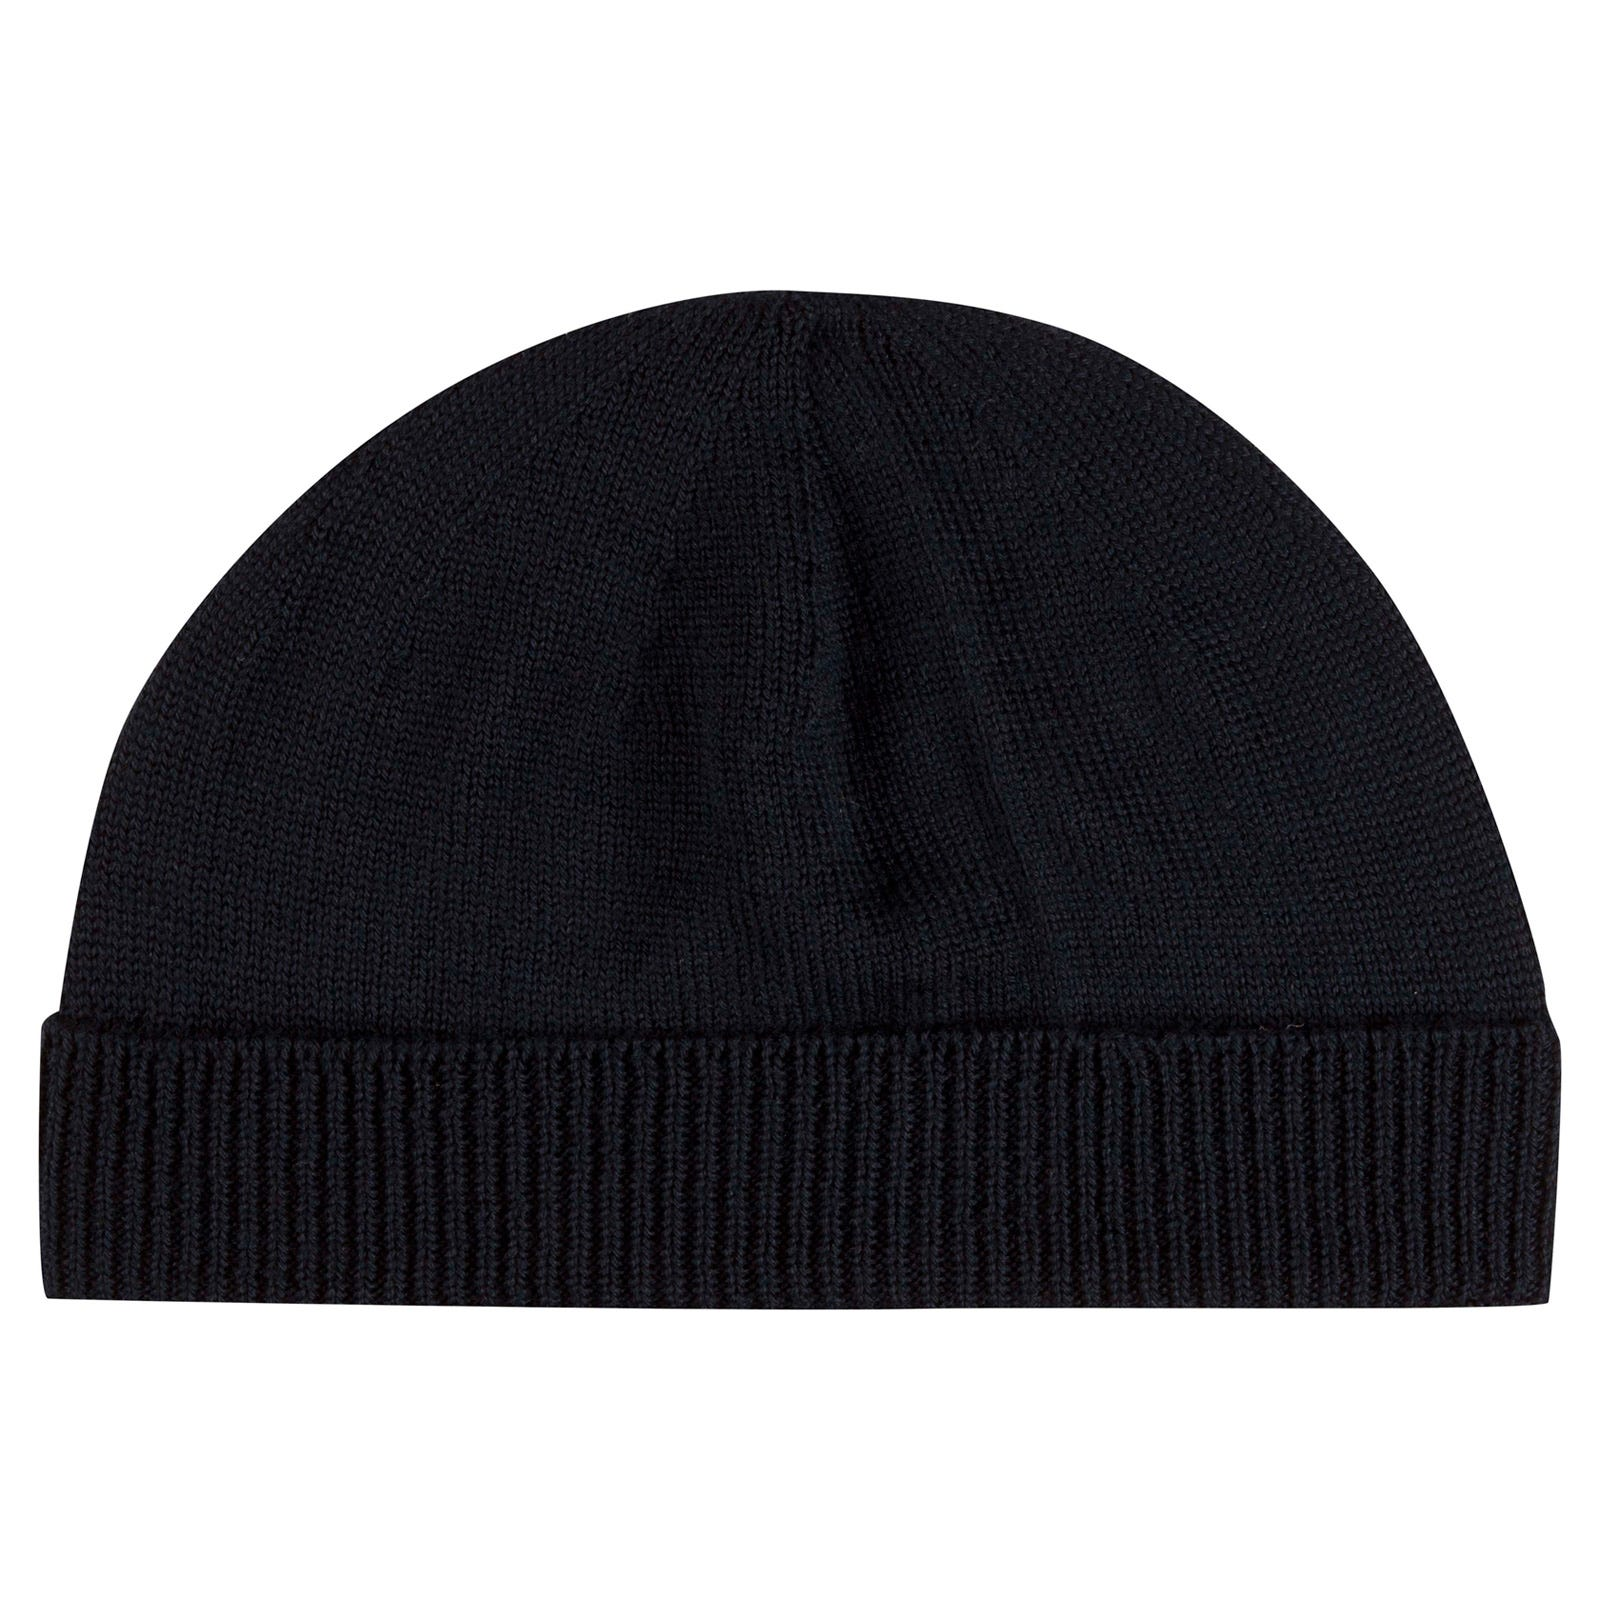 John Smedley Taurus Merino Wool Hat in Midnight-ONE